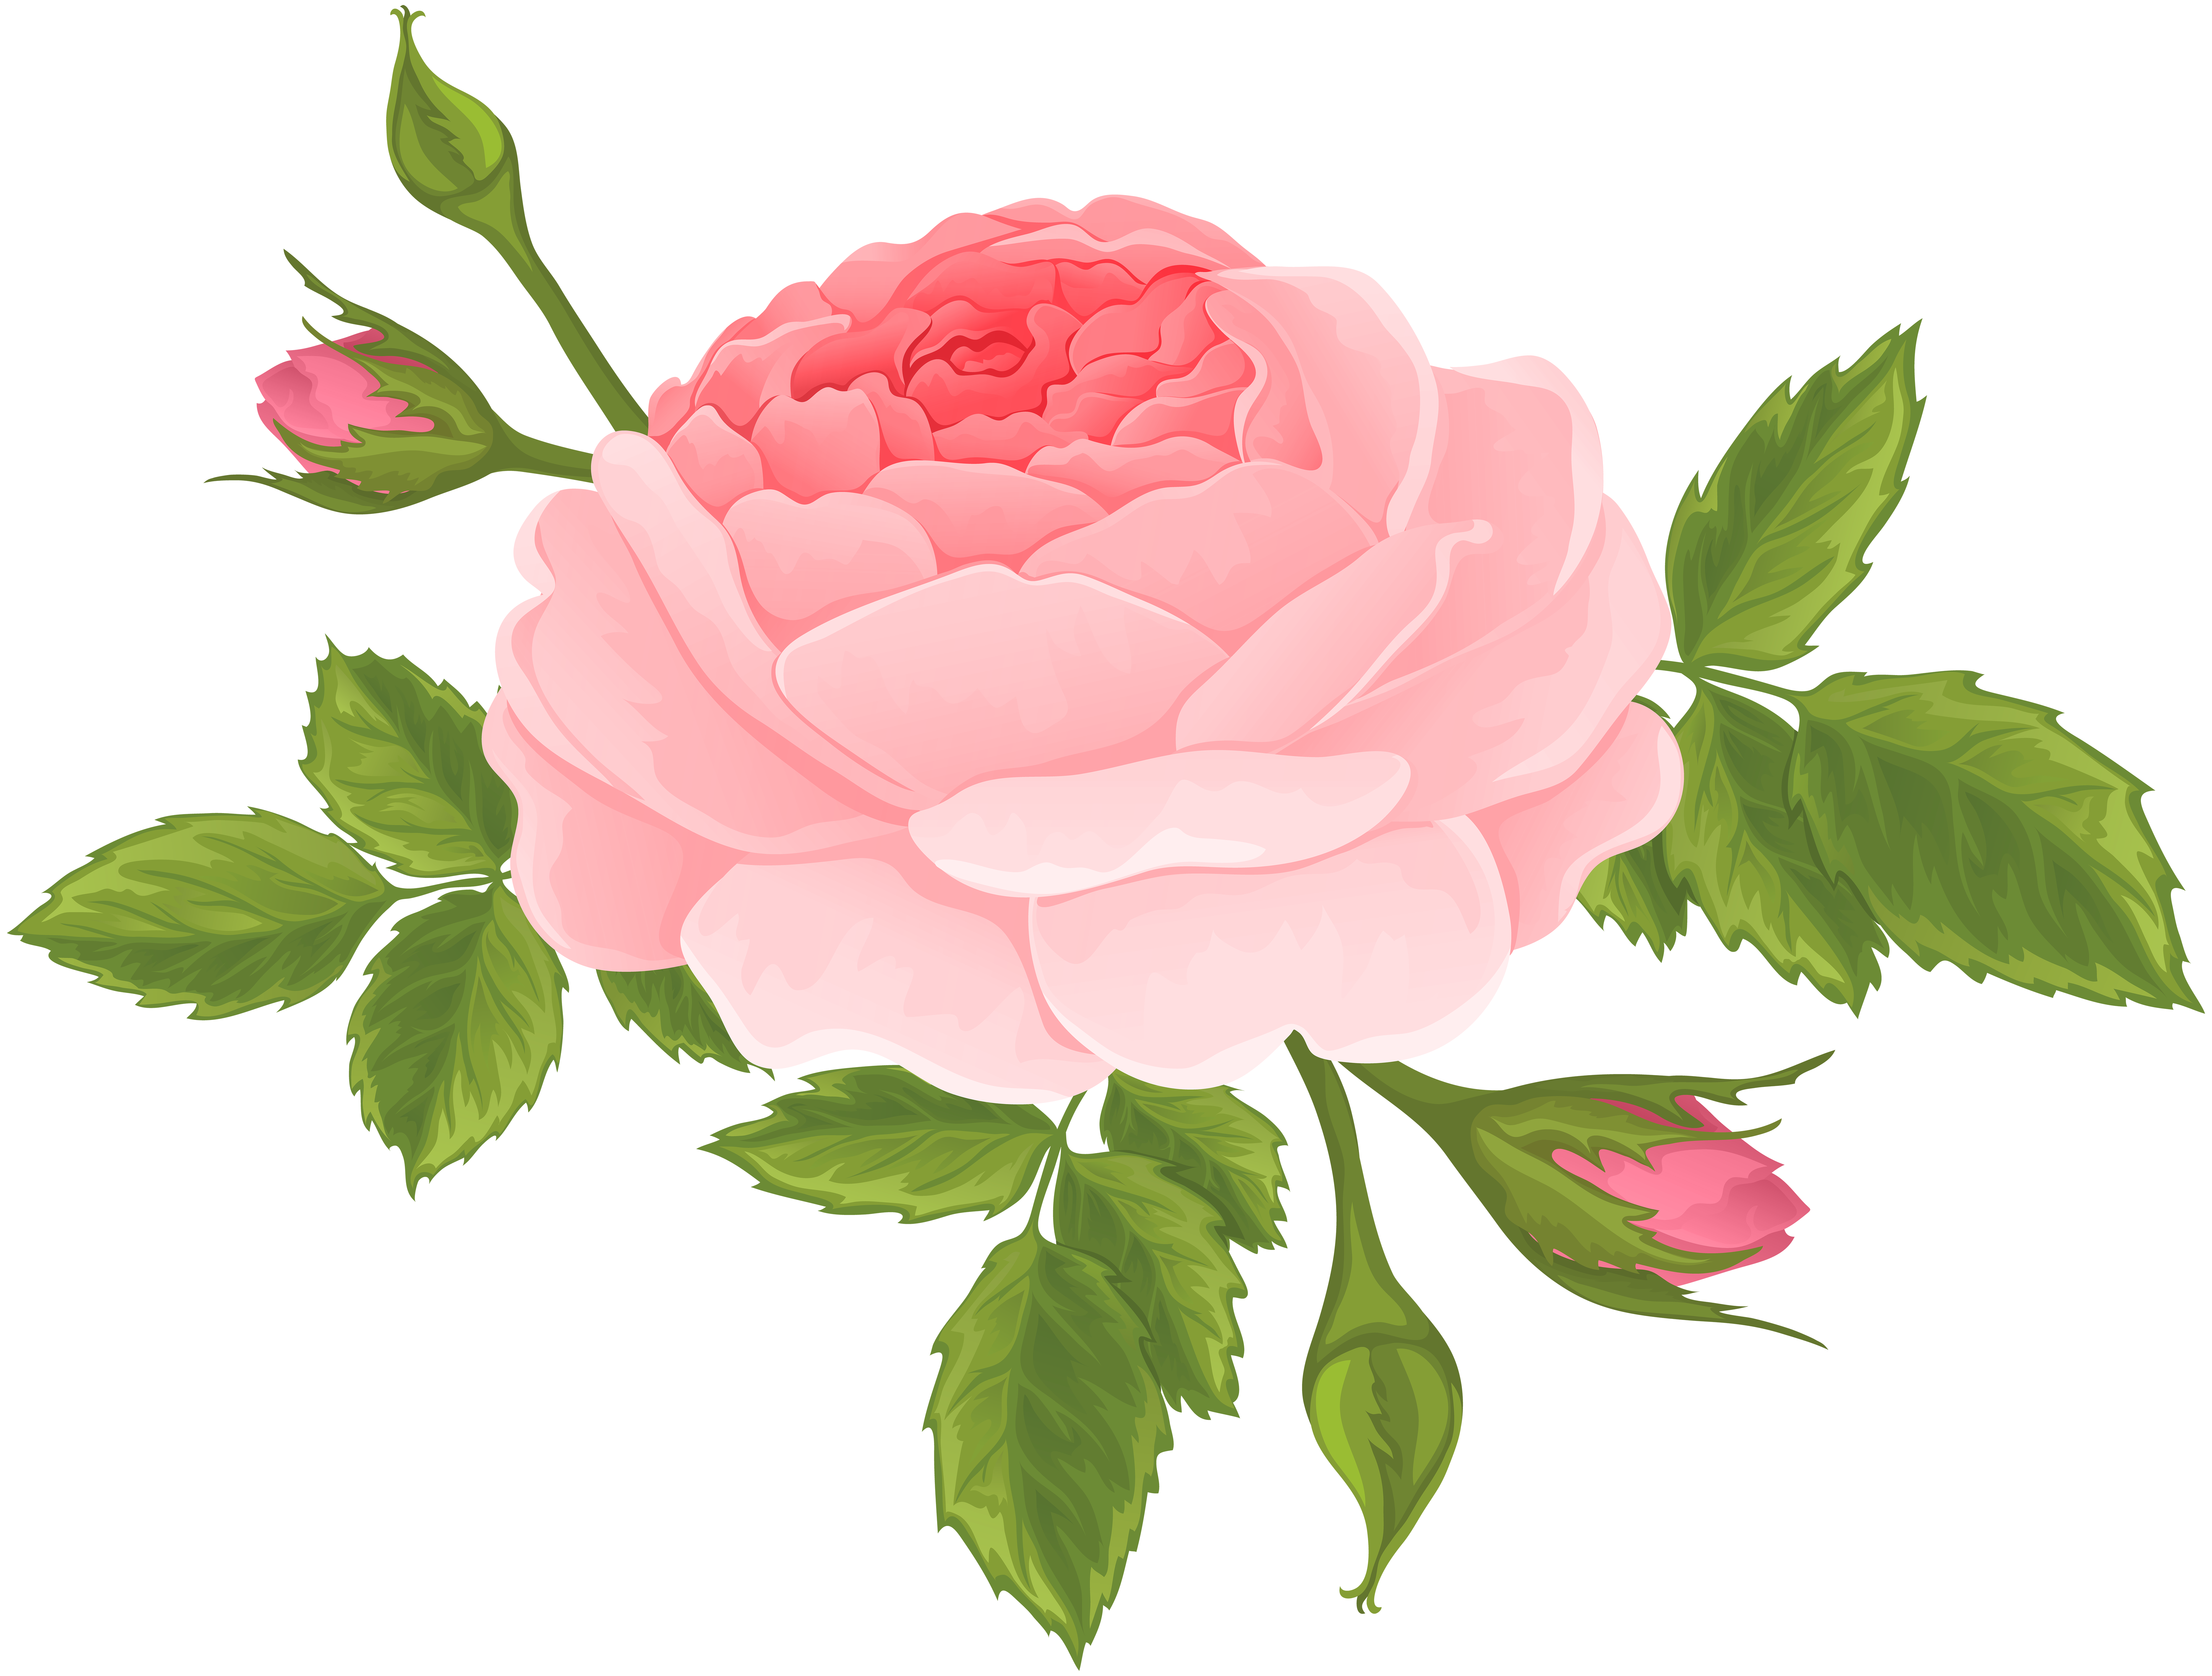 Clipart roses rose bud. Pink with buds png